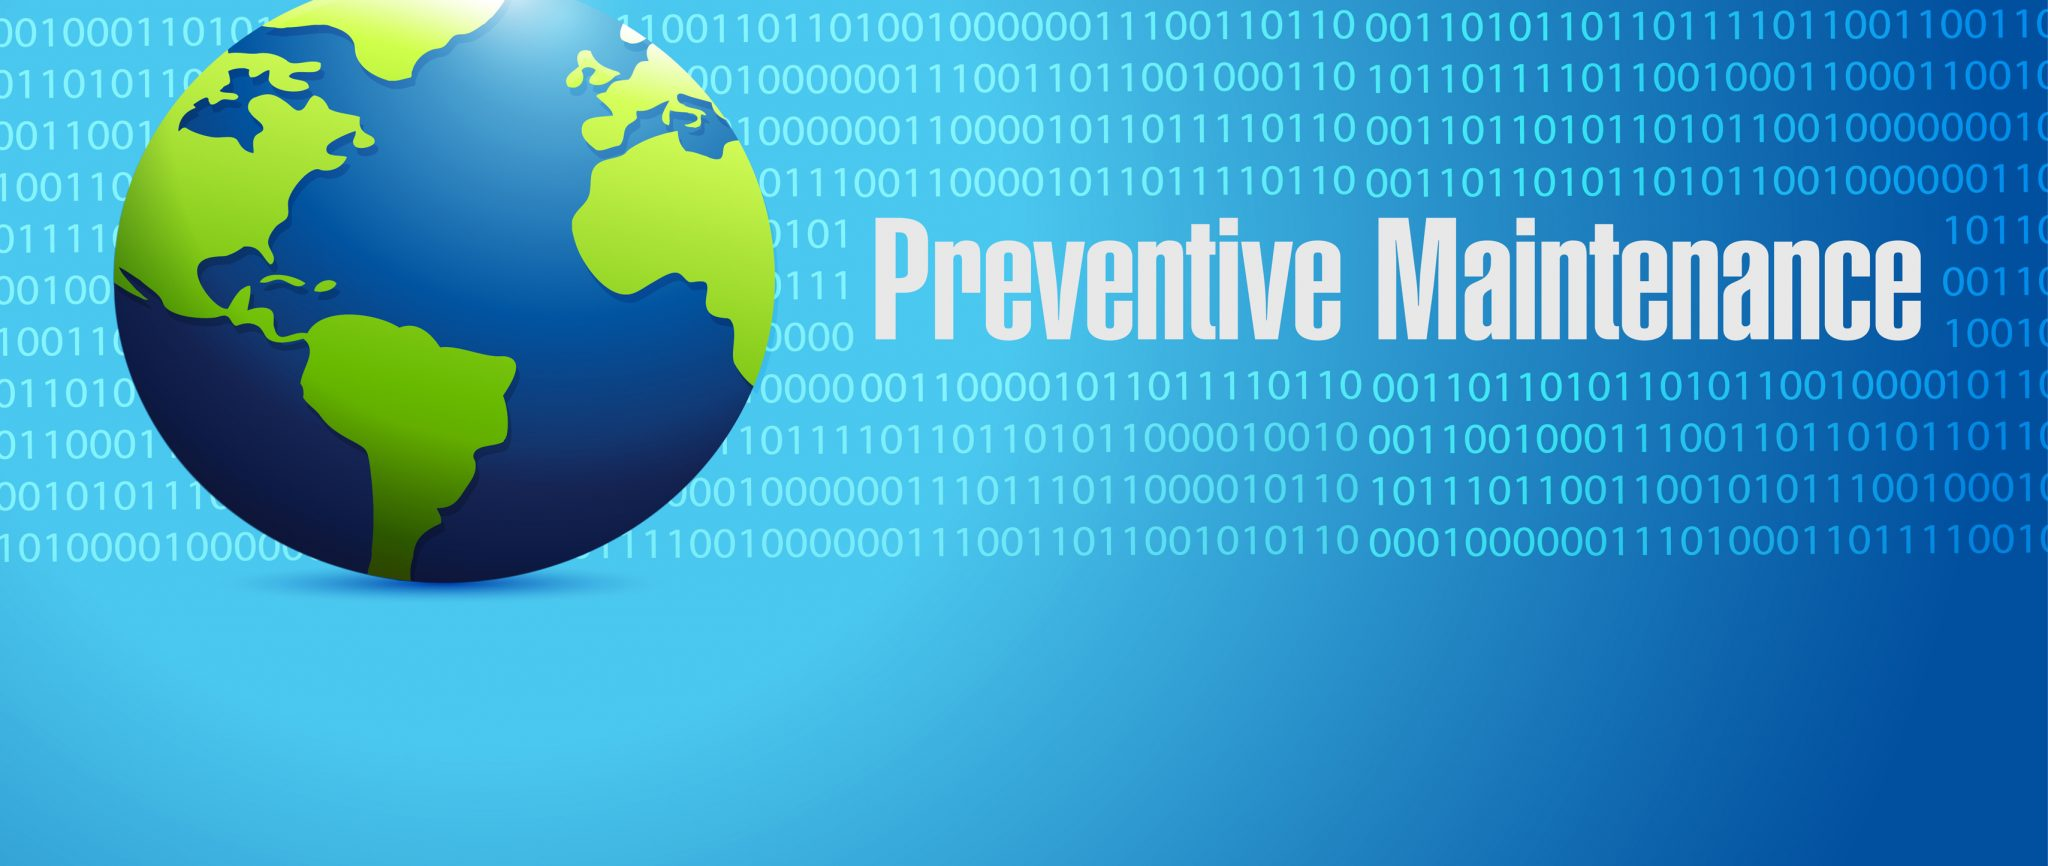 cognitive computing preventive maintenance